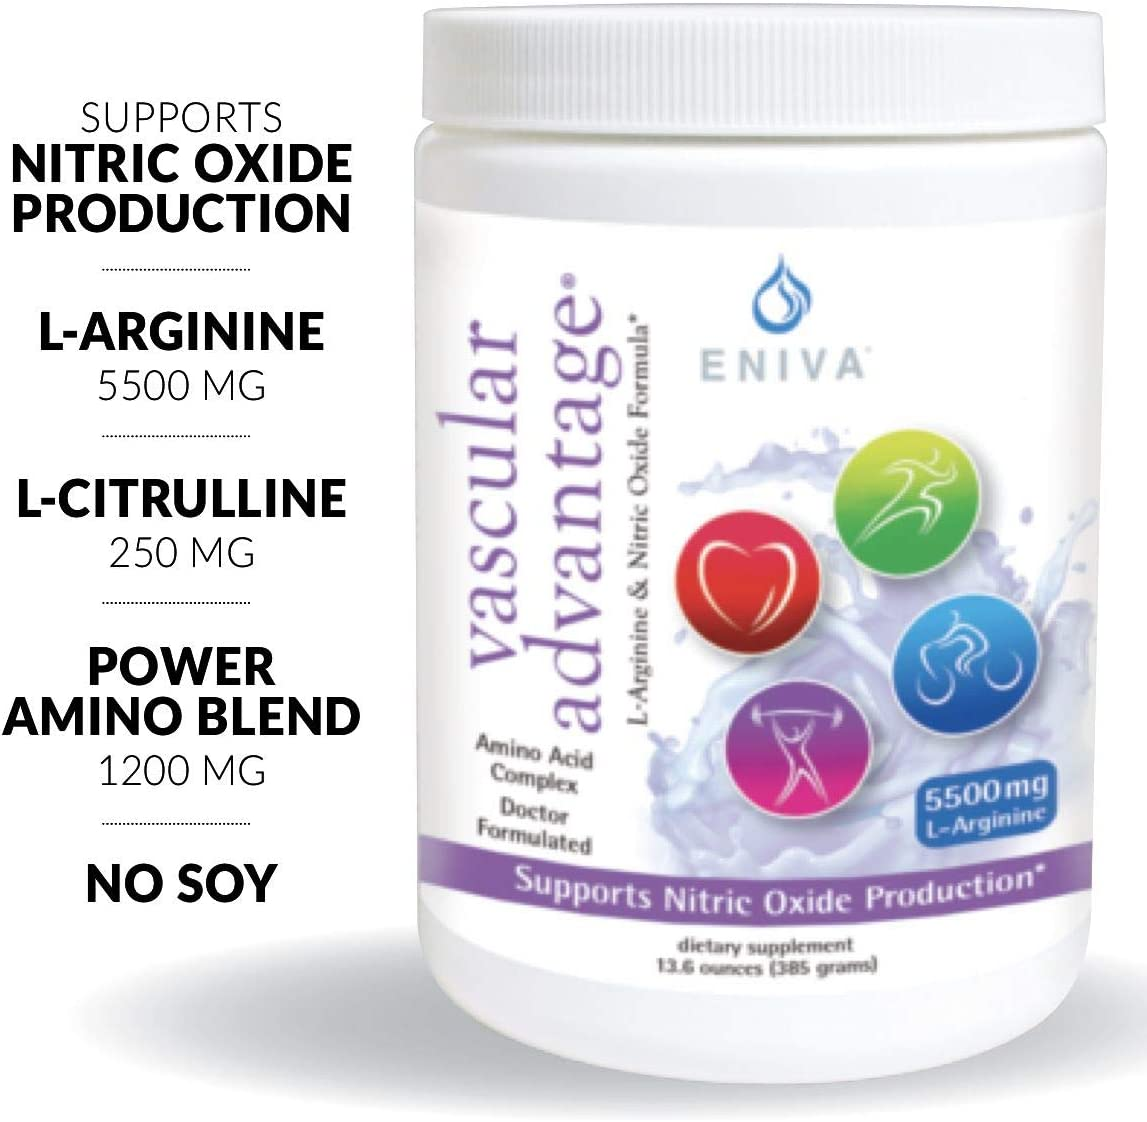 Eniva Pre Workout Nitric Oxide Powder. Extra Strength. 6,950mg Aminos Per Serving. Energy, Endurance, Circulation, Strength. Vegan. No Soy. Keto Friendly.